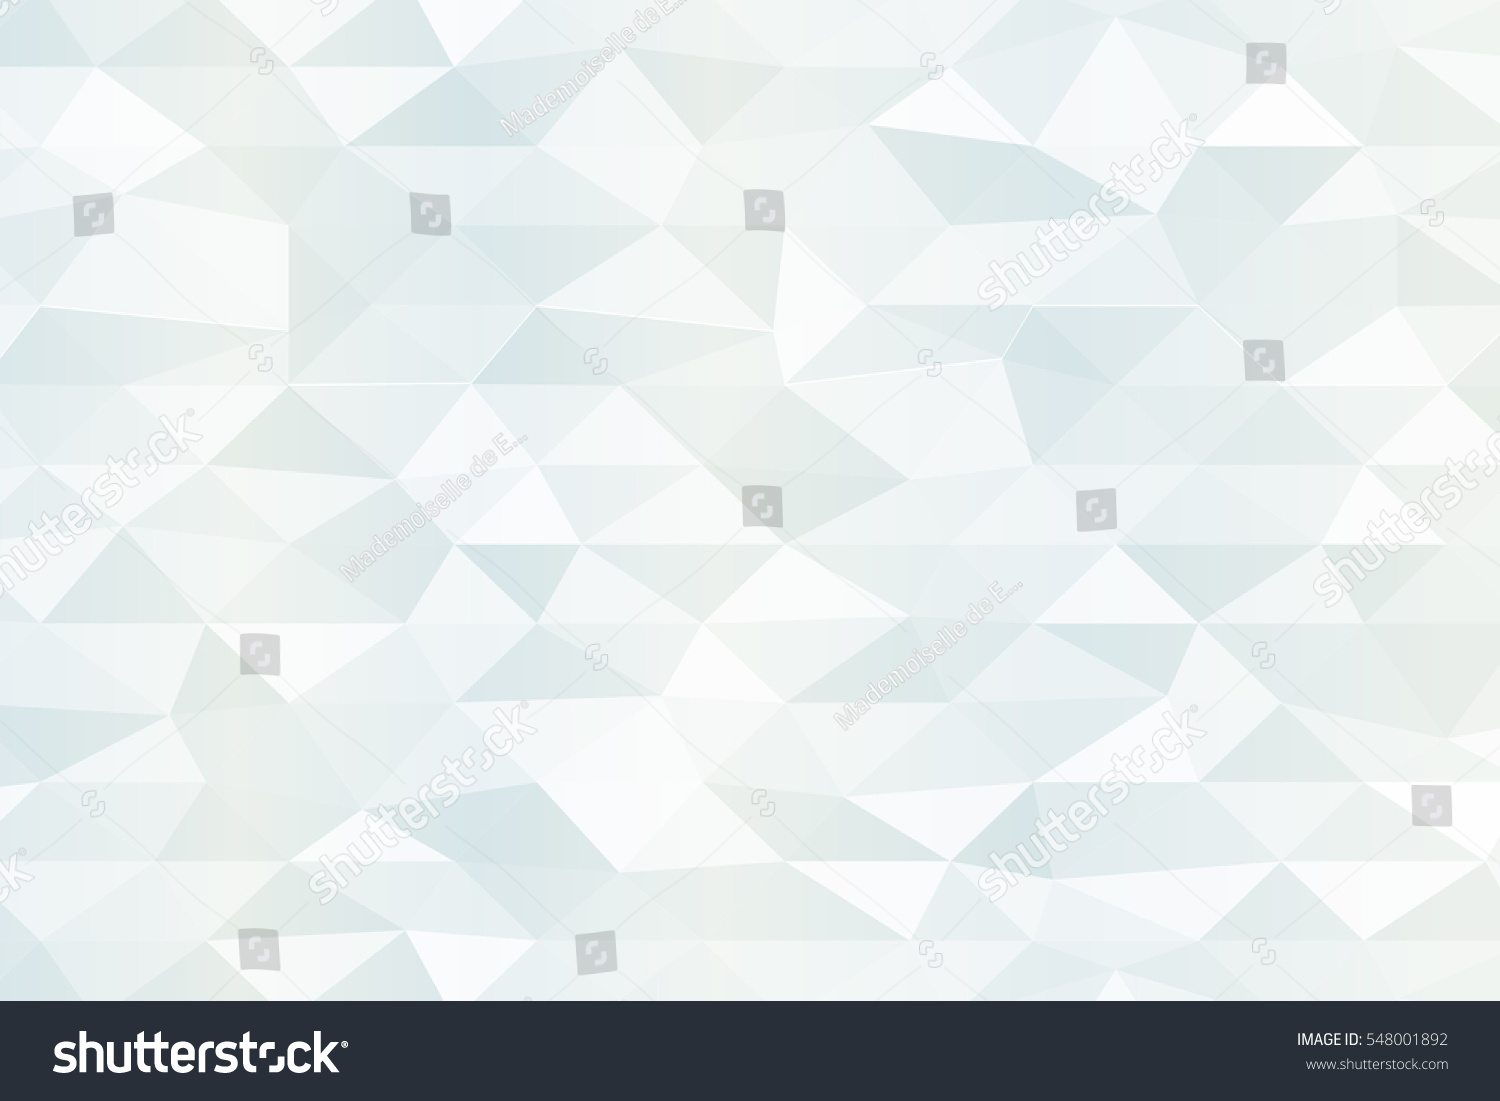 Bright Background Greeting Cards Polygon Stock Illustration 548001892 Shutterstock